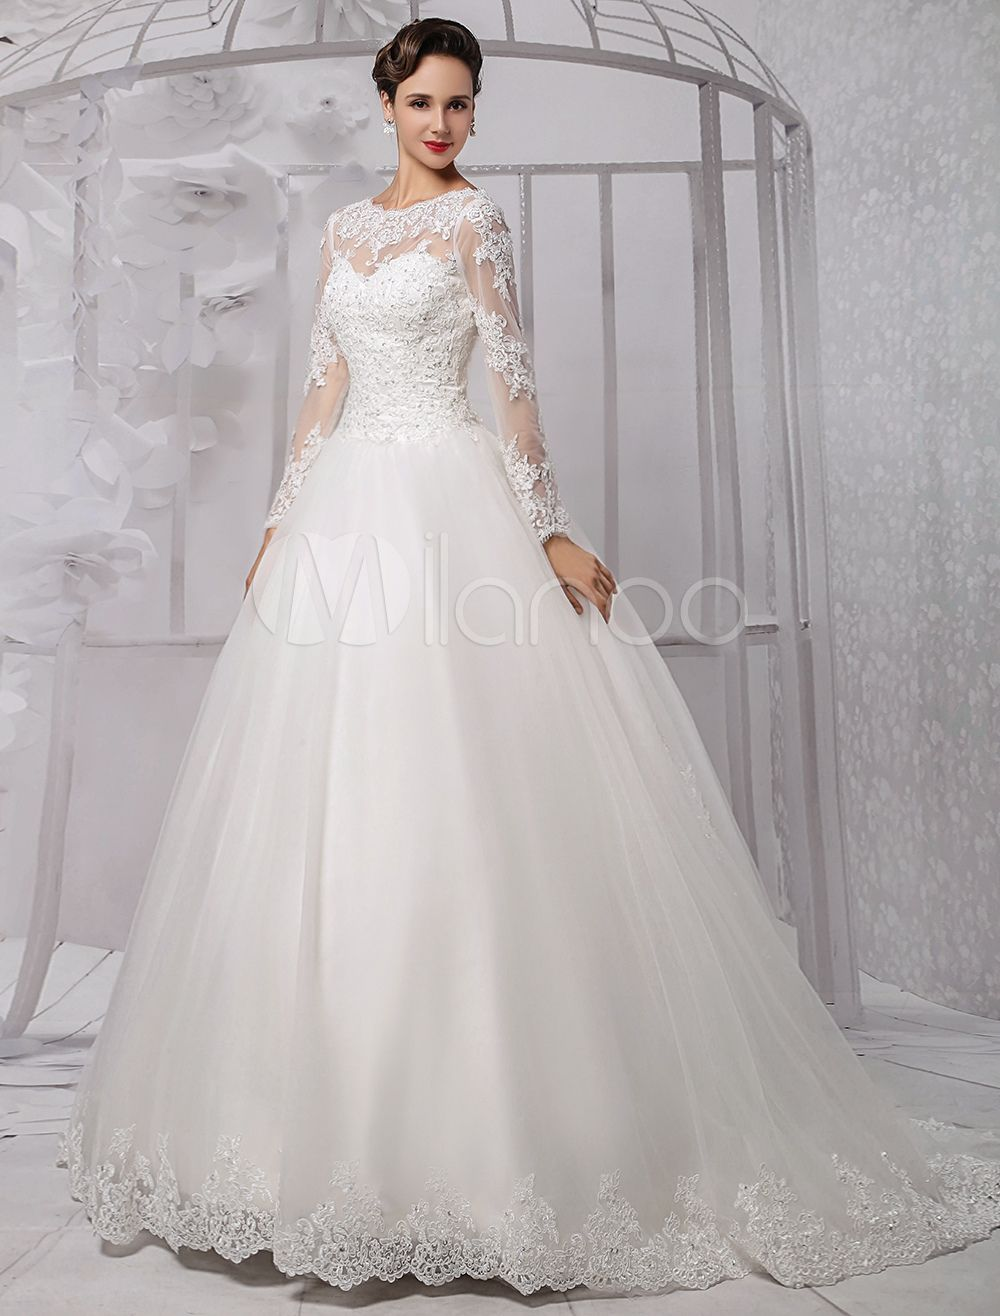 Wedding dresses ball gown long sleeves bridal dress lace beading v